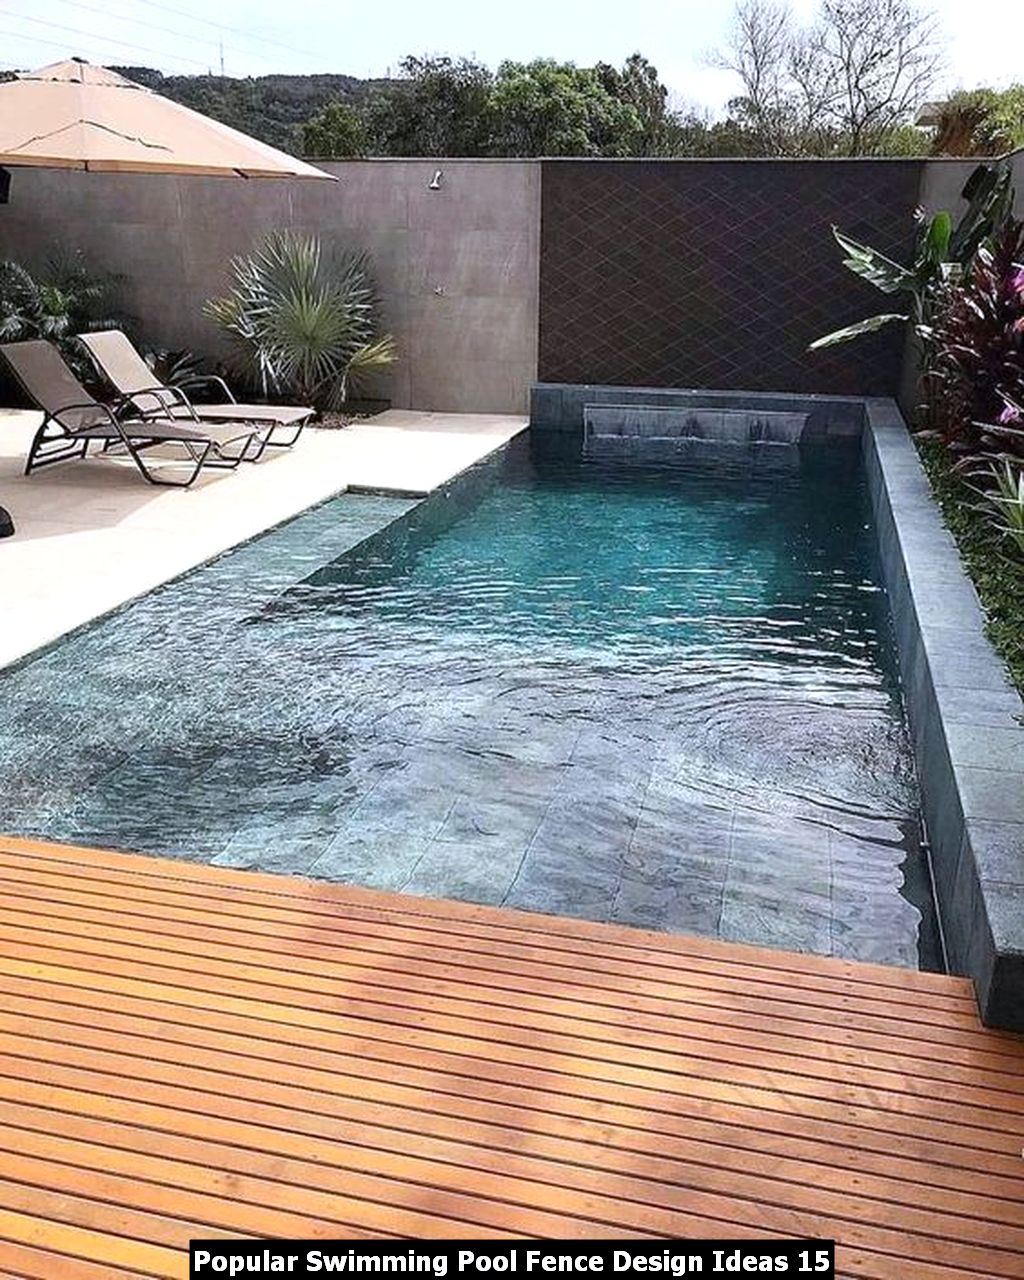 Popular Swimming Pool Fence Design Ideas 15